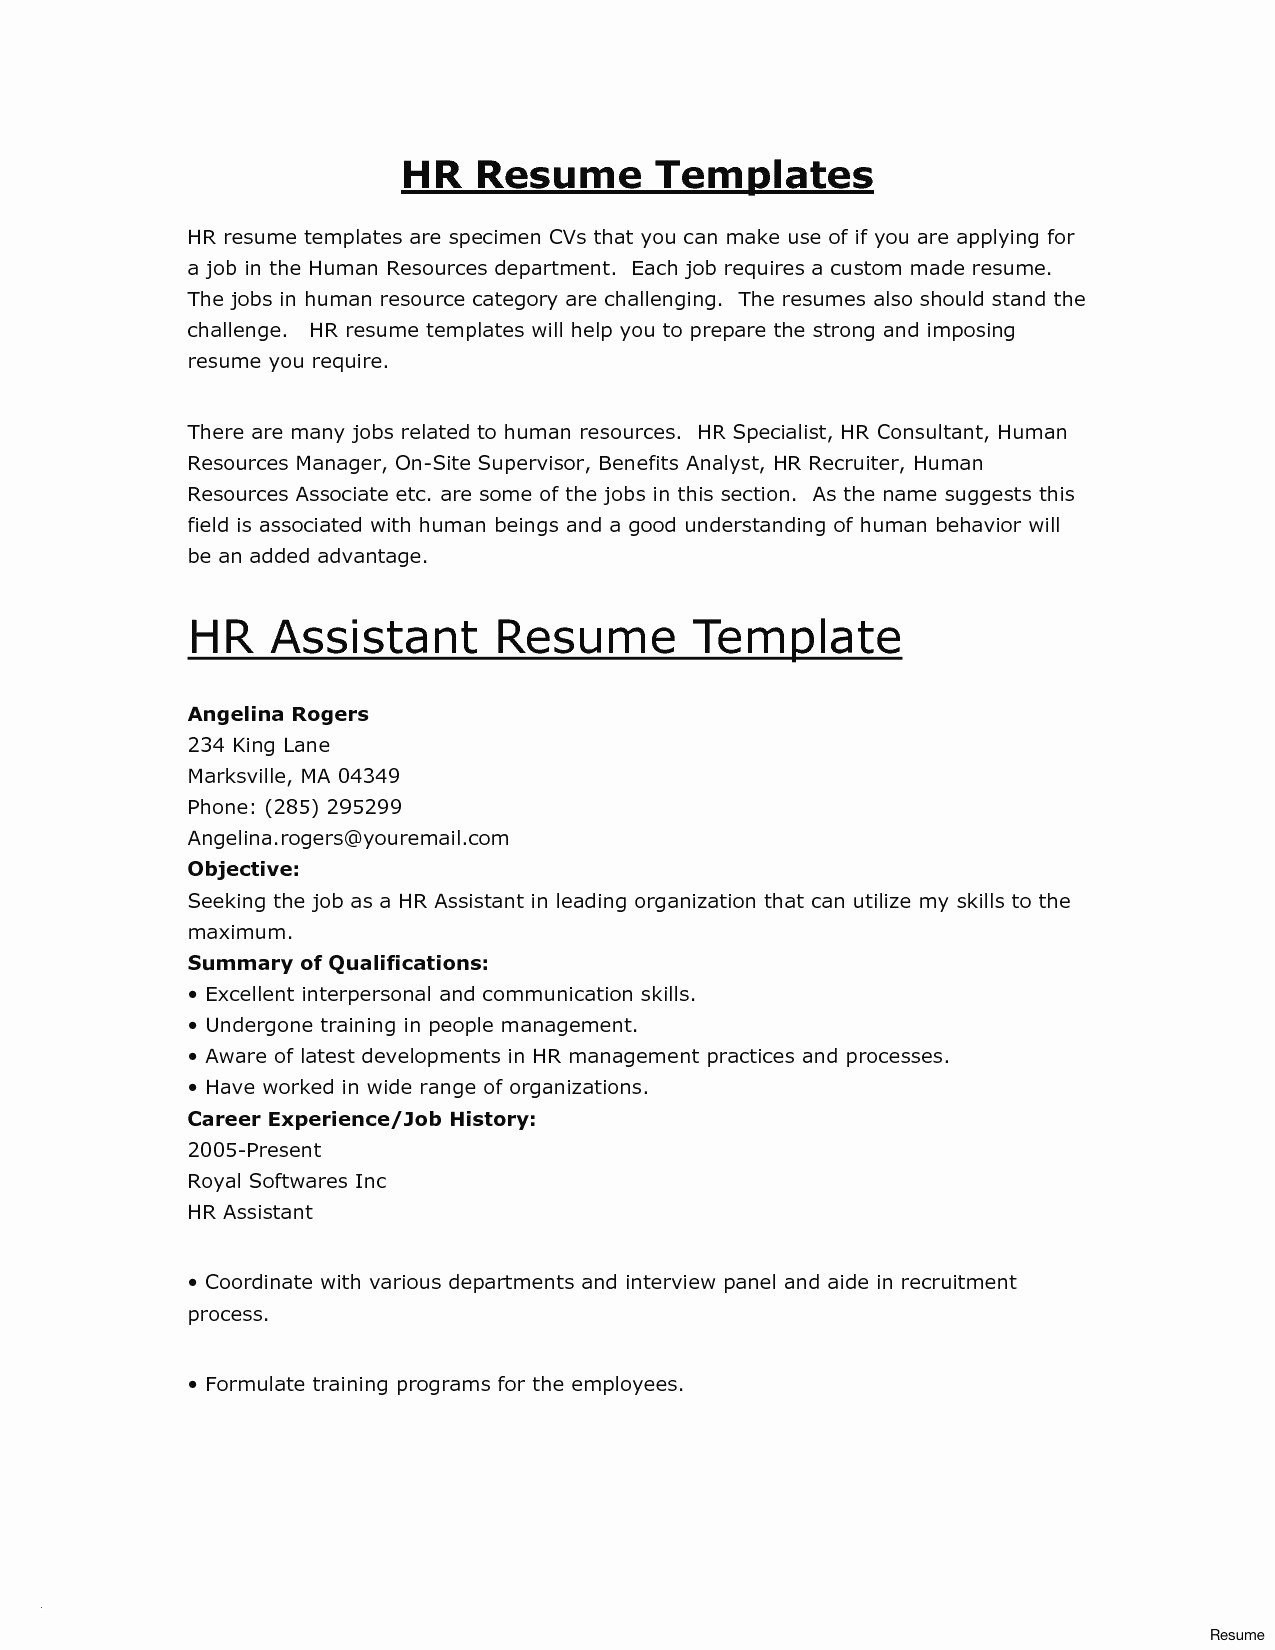 Dialysis Technician Job Description Resume - Inspirational Resume Sample for Automotive Technician